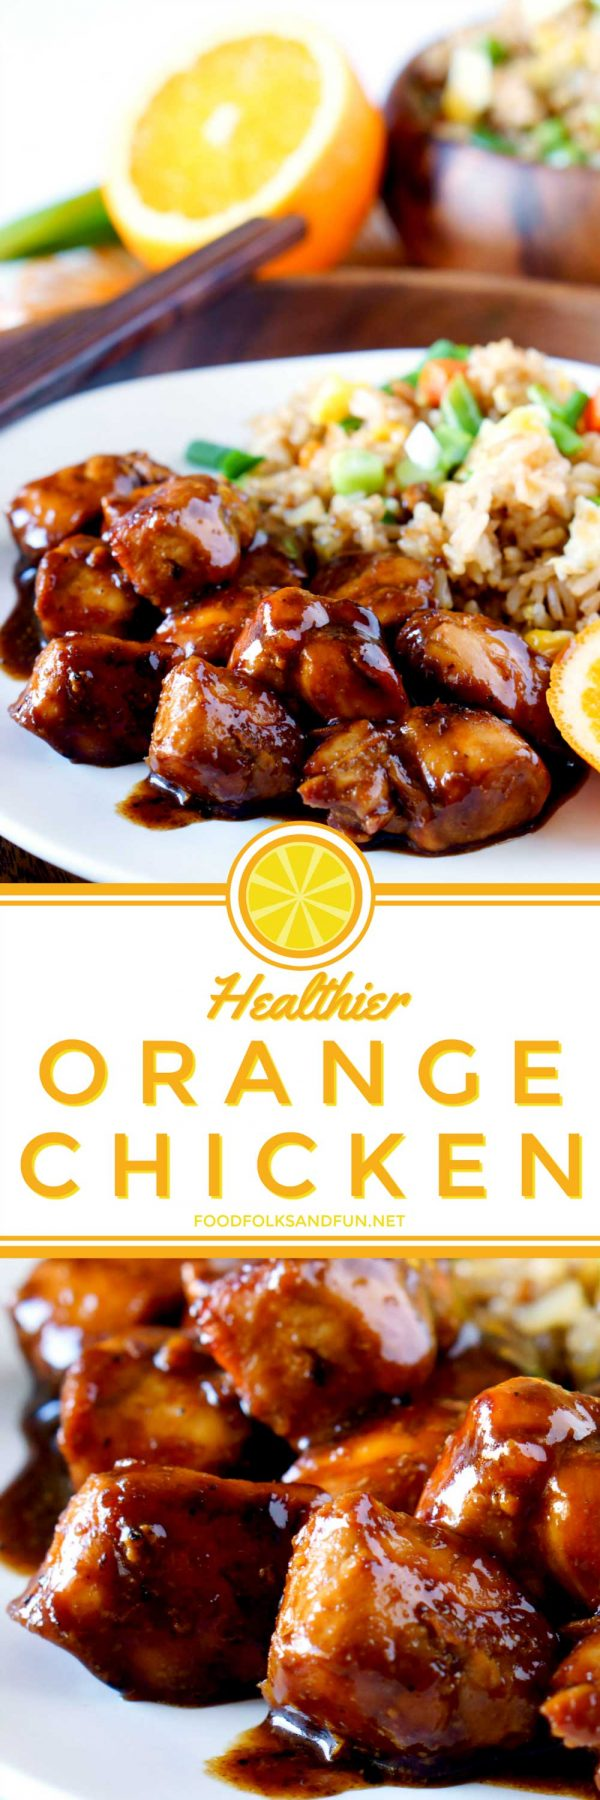 The classic Chinese takeout, Orang Chicken, made healthier!